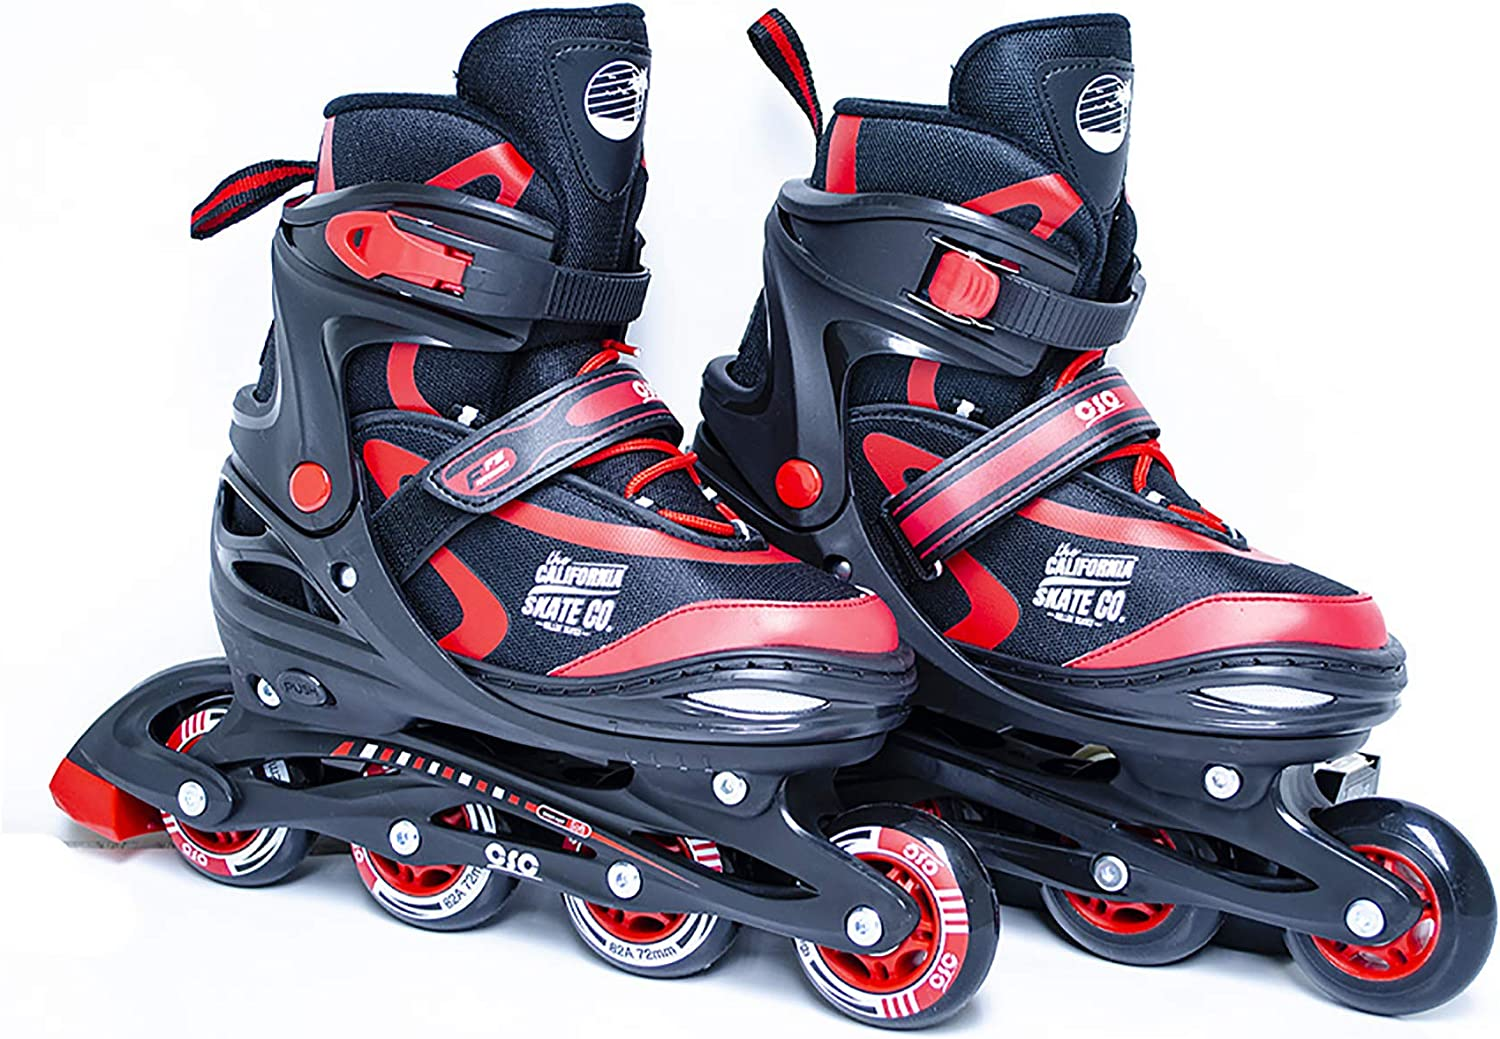 California Skate Co Adjustable Inline Skates – Zuma Kids Beginner Roller Skates for Girls, Boys, Men, Women